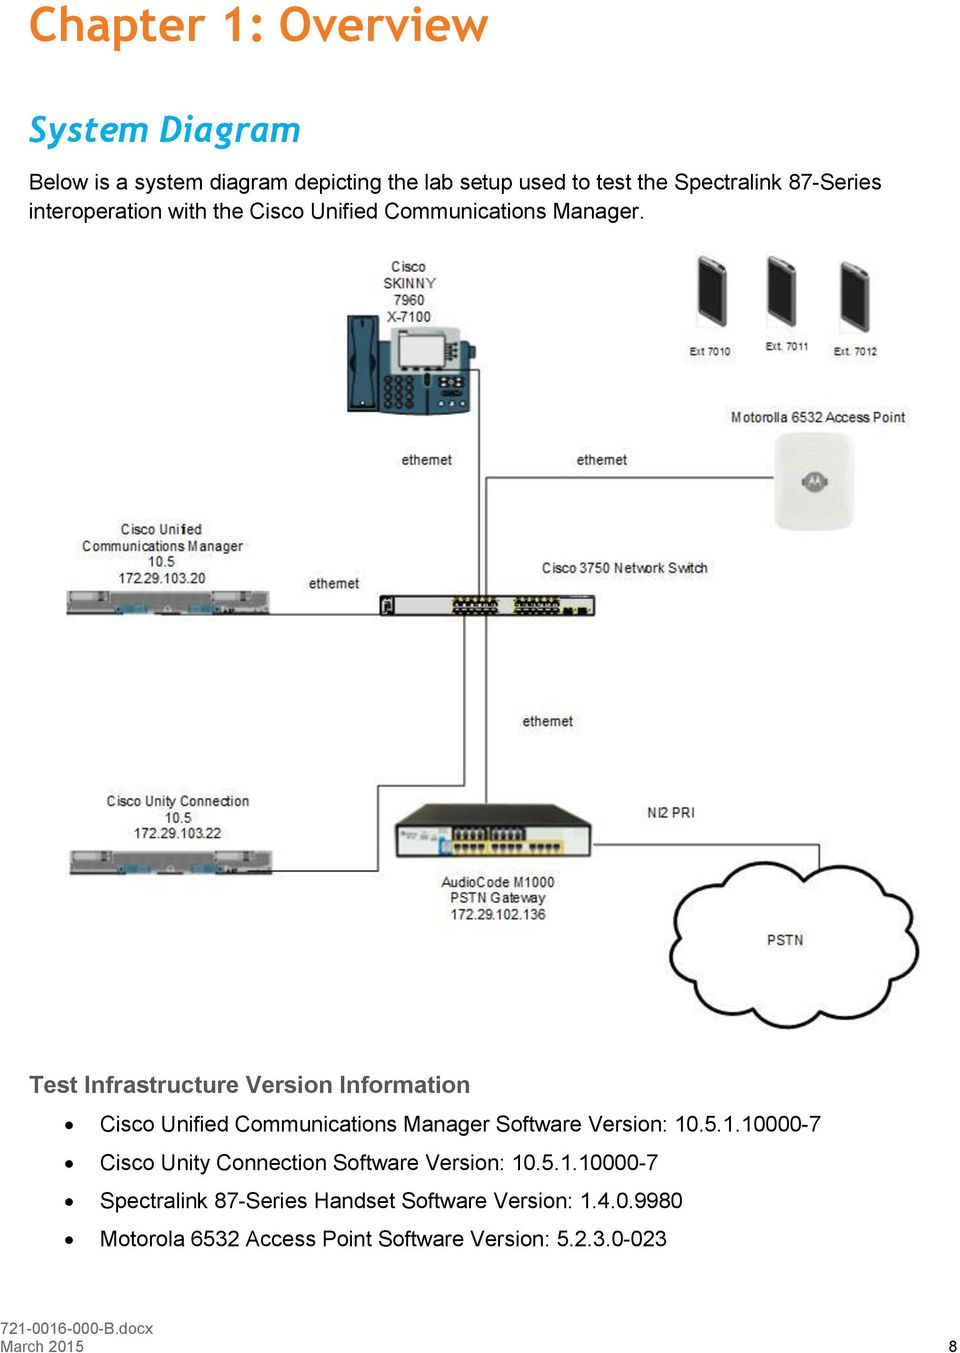 Cisco Unified Communications Manager (CUCM) - PDF